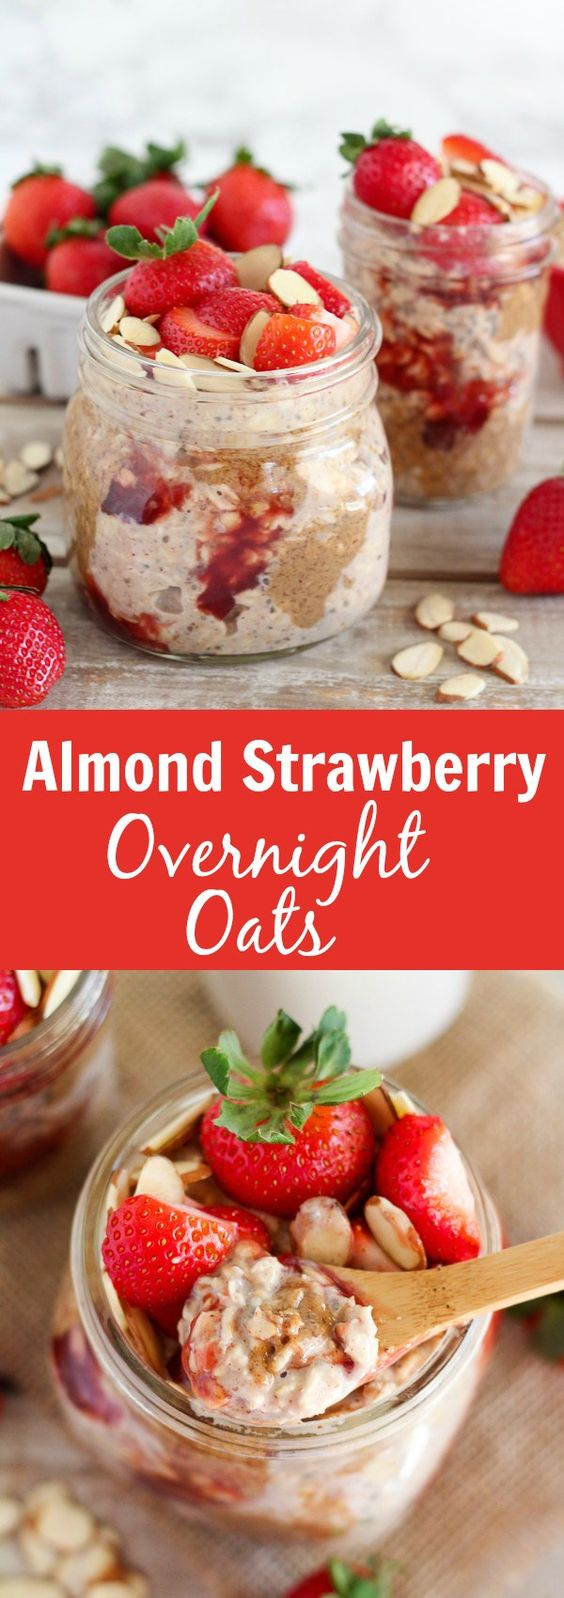 ALMOND STRAWBERRY OVERNIGHT OATS